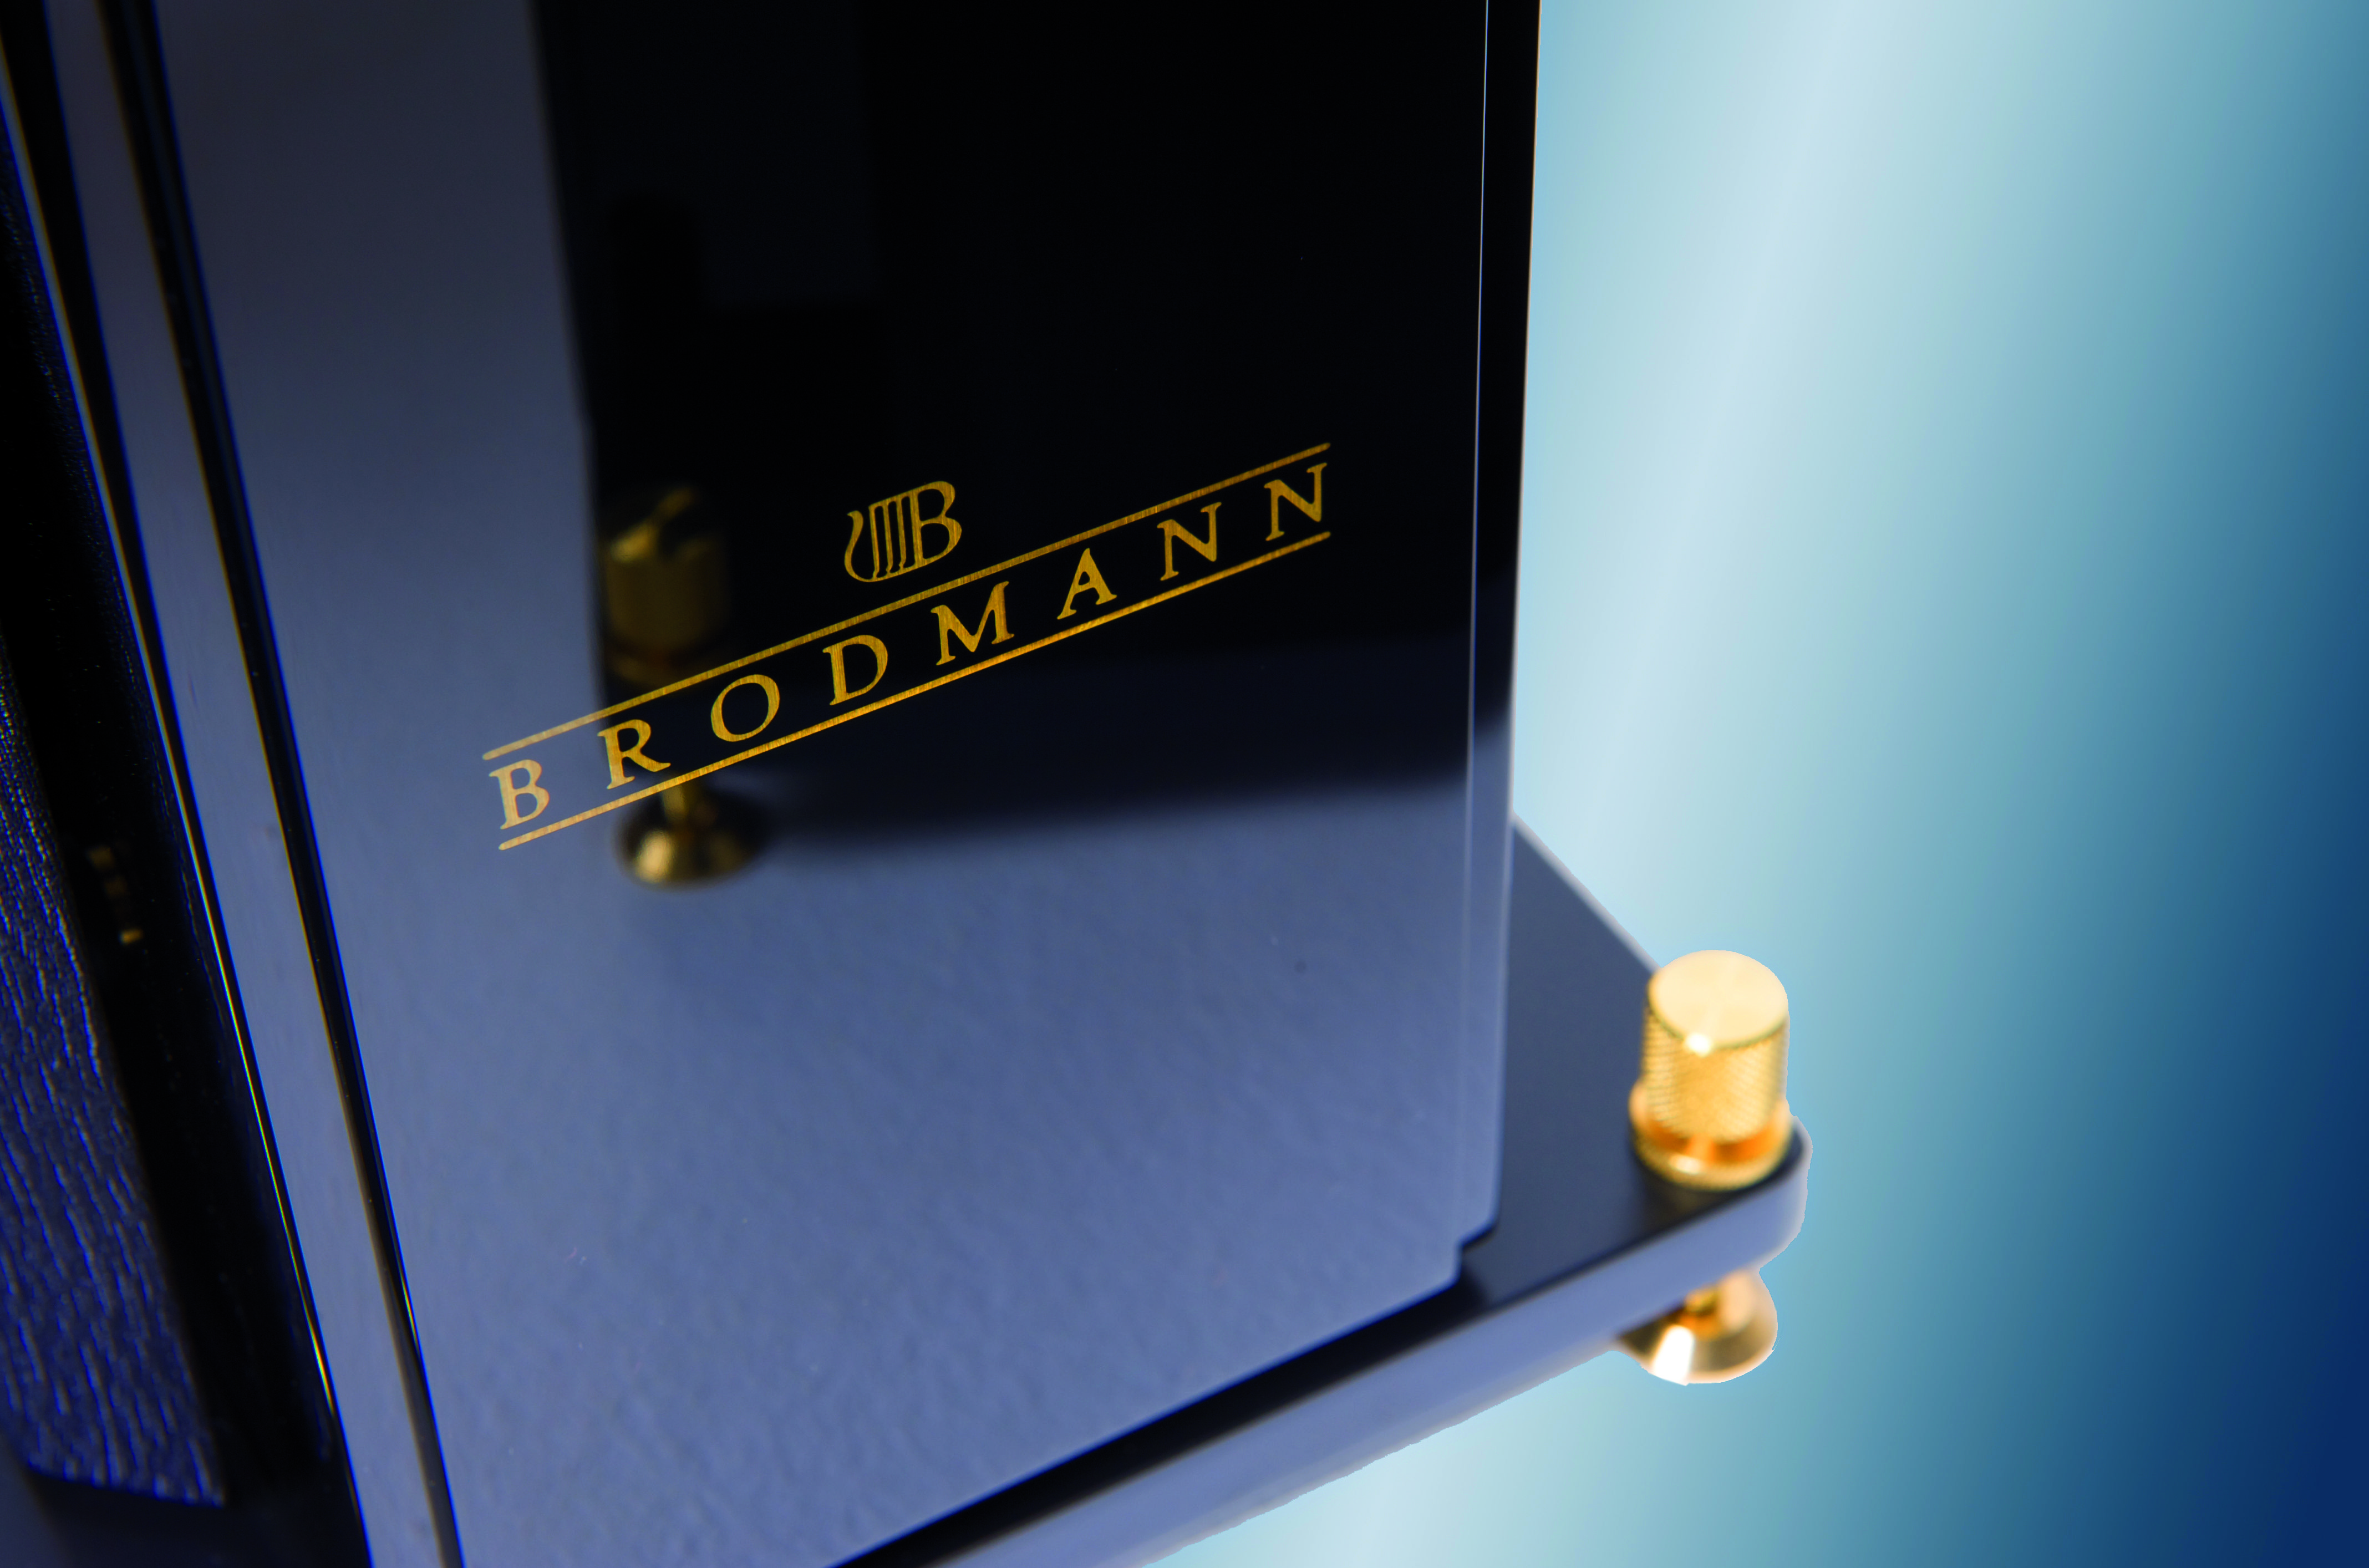 Brodmann attention to detail Tech company logos, Company